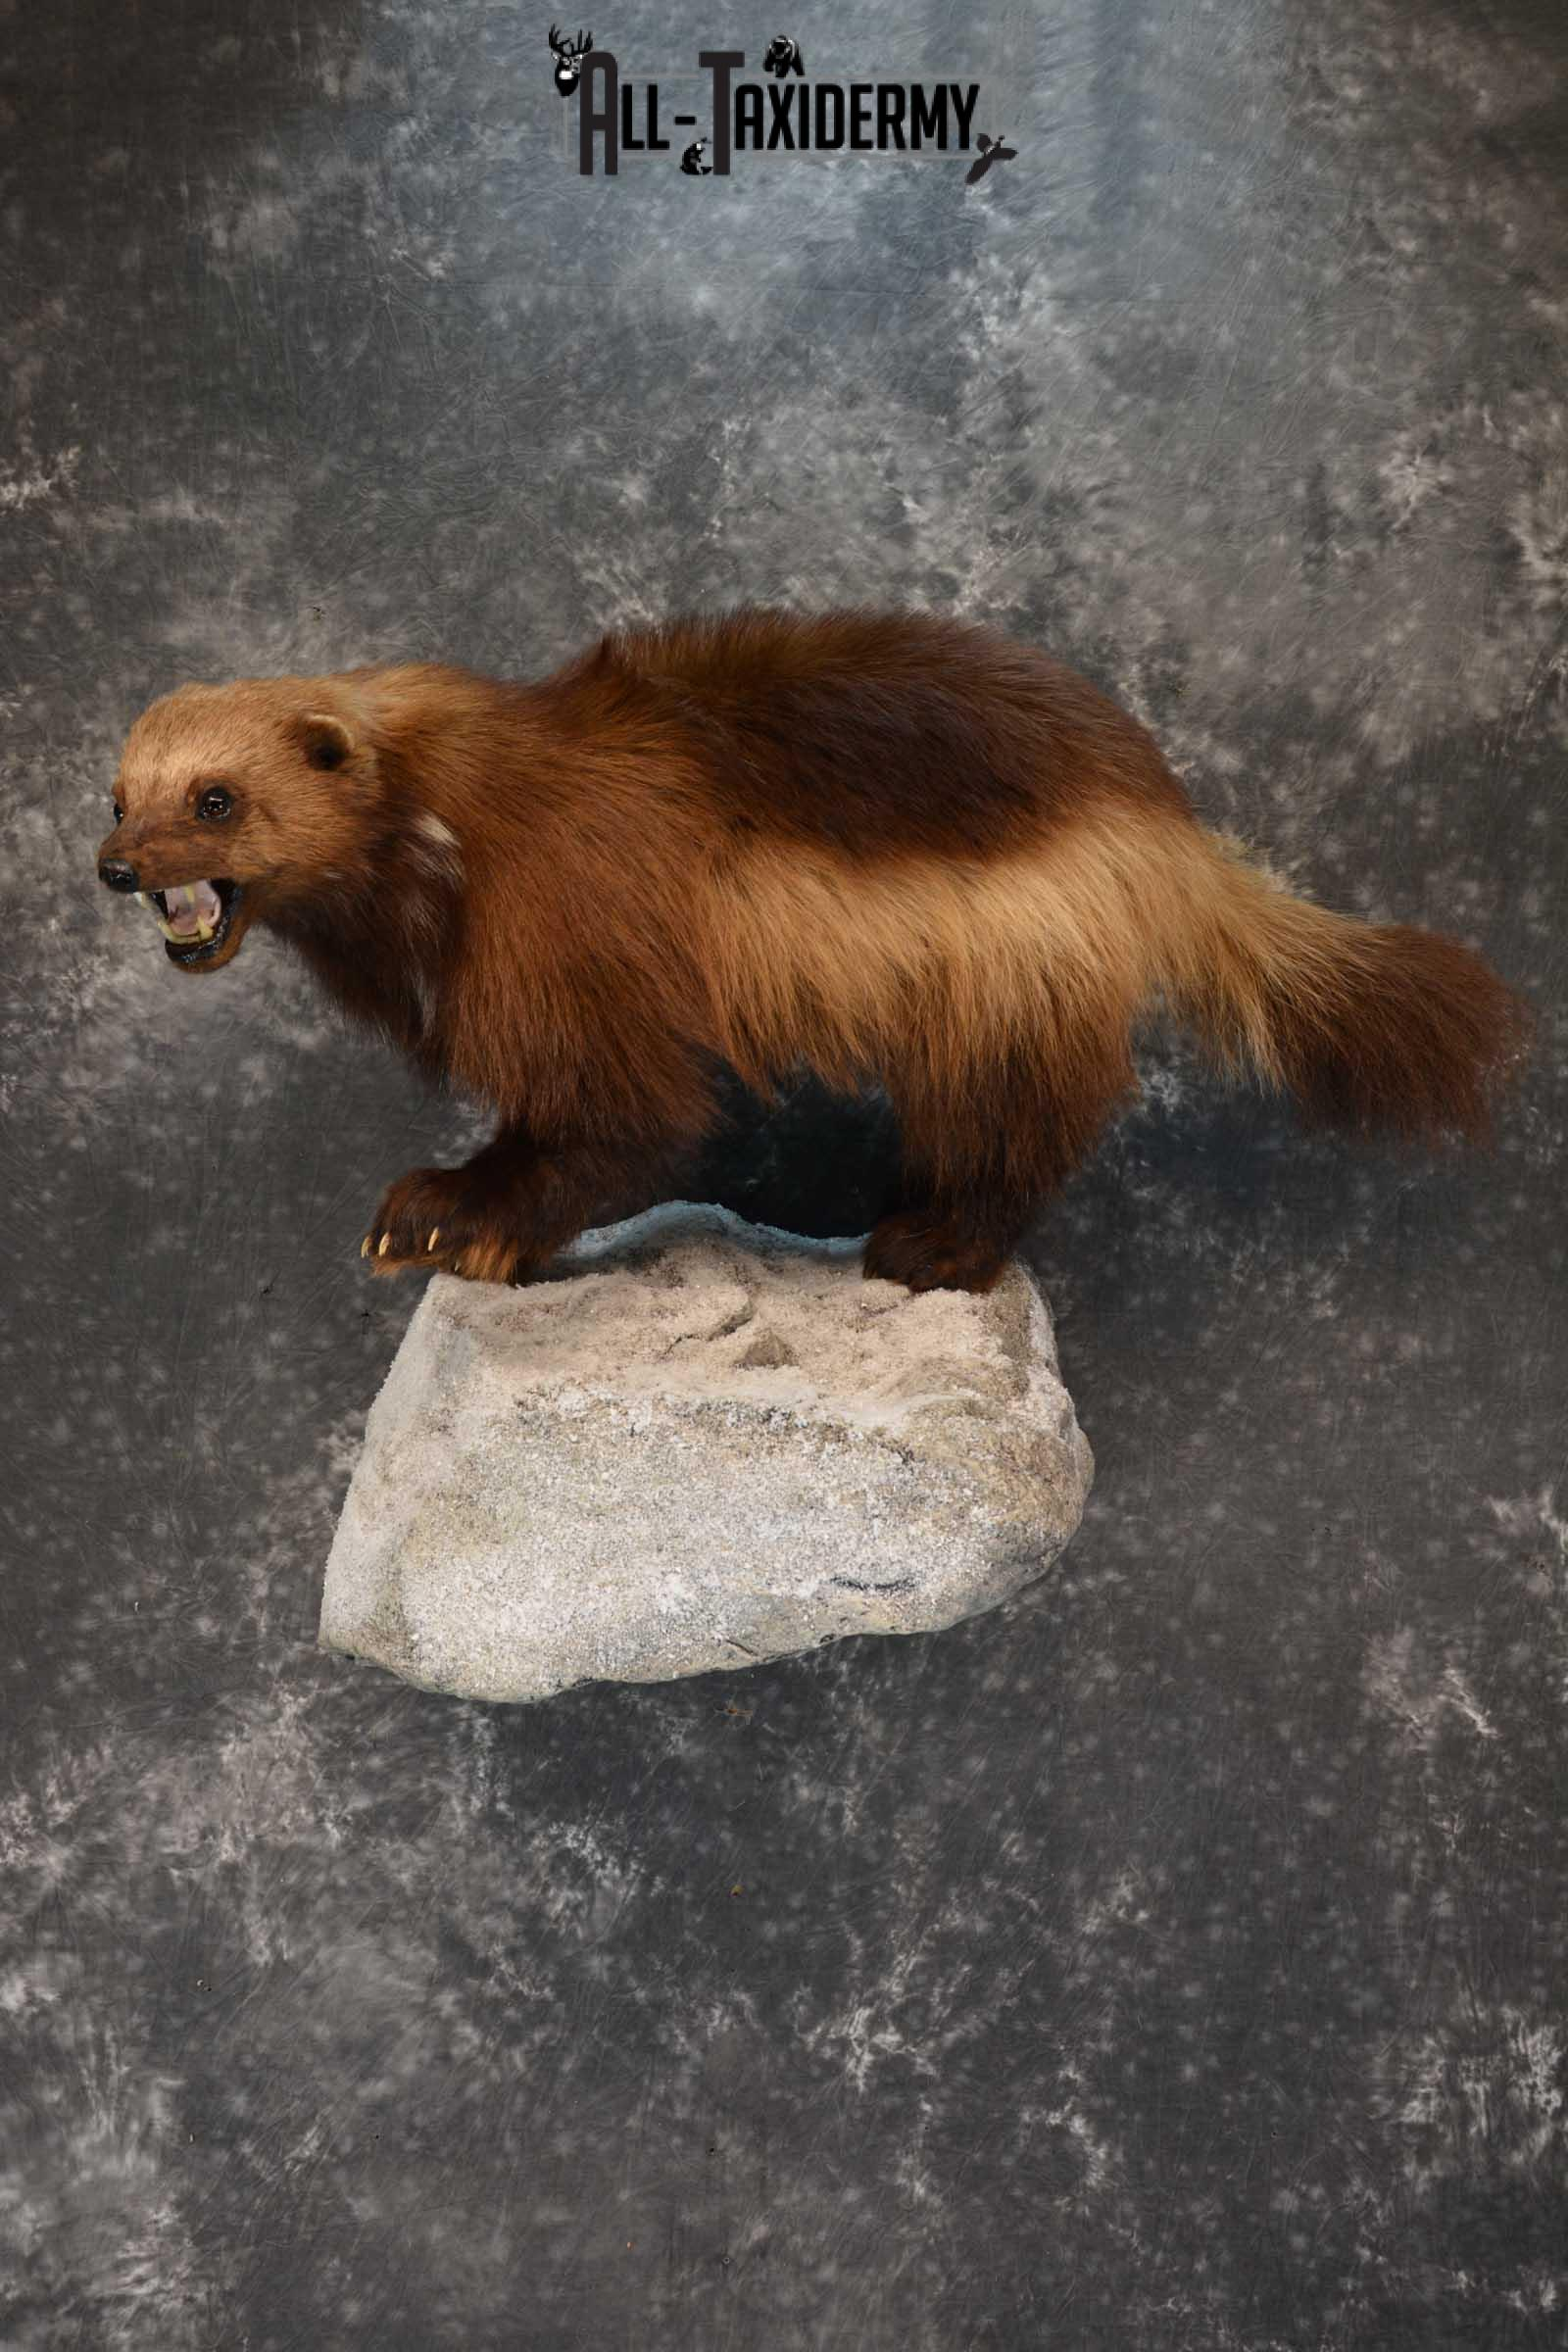 Full Body Wolverine Taxidermy mount for sale SKU 1722